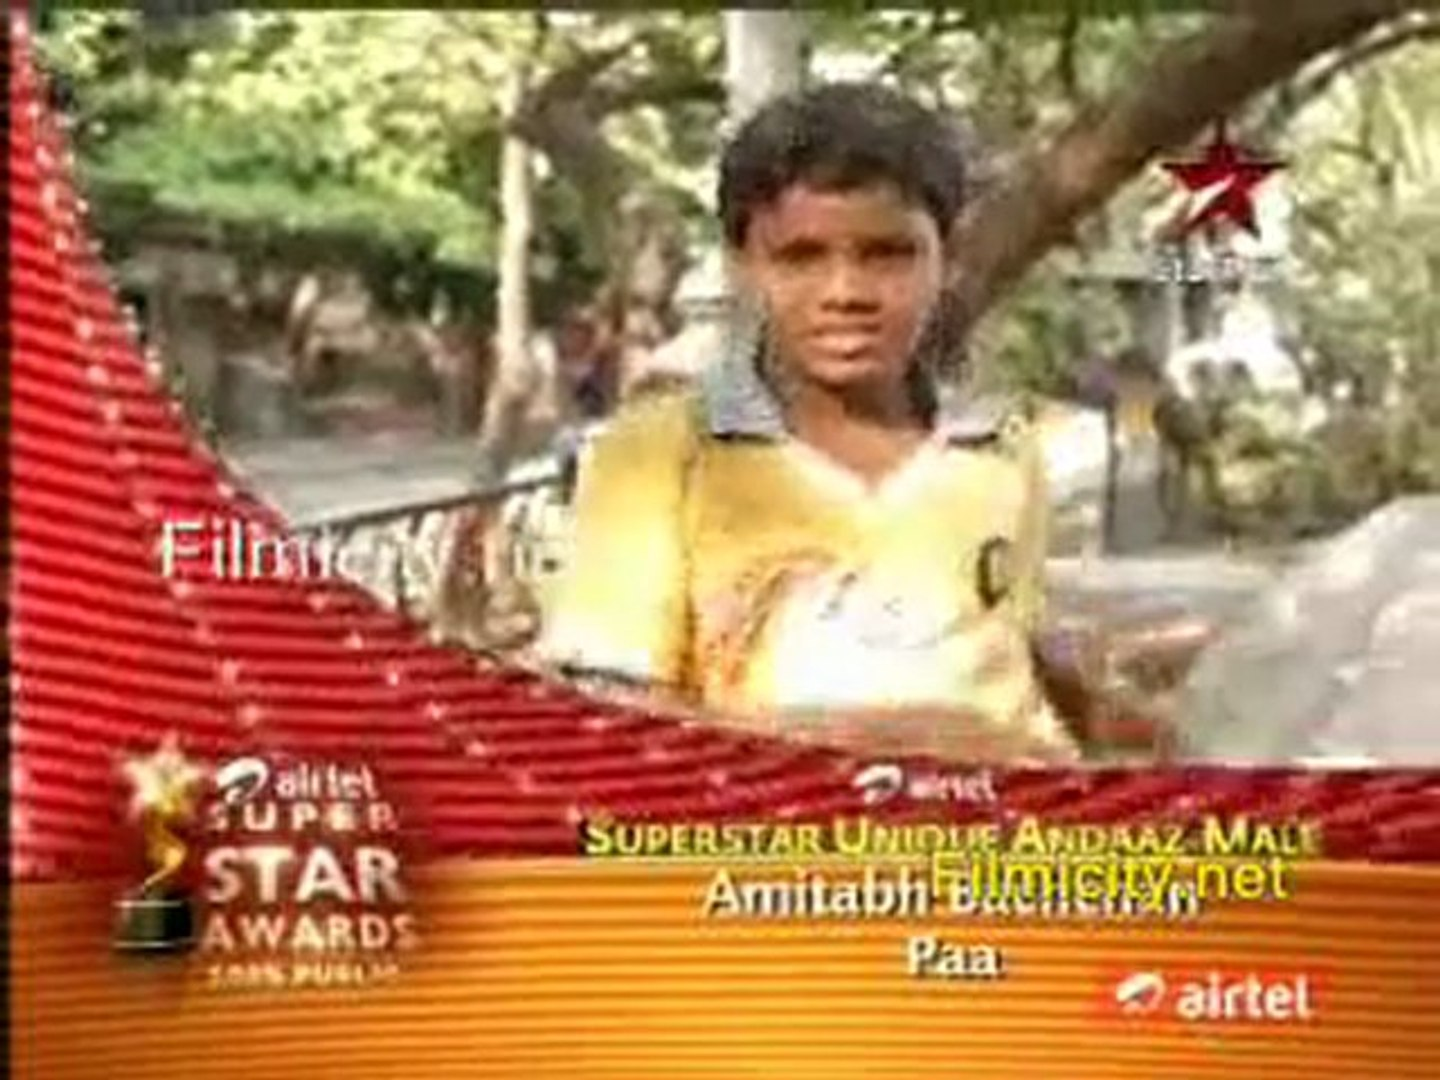 Airtel Super Star Awards 2011 - 27th November 2011 Video Watch - pt11